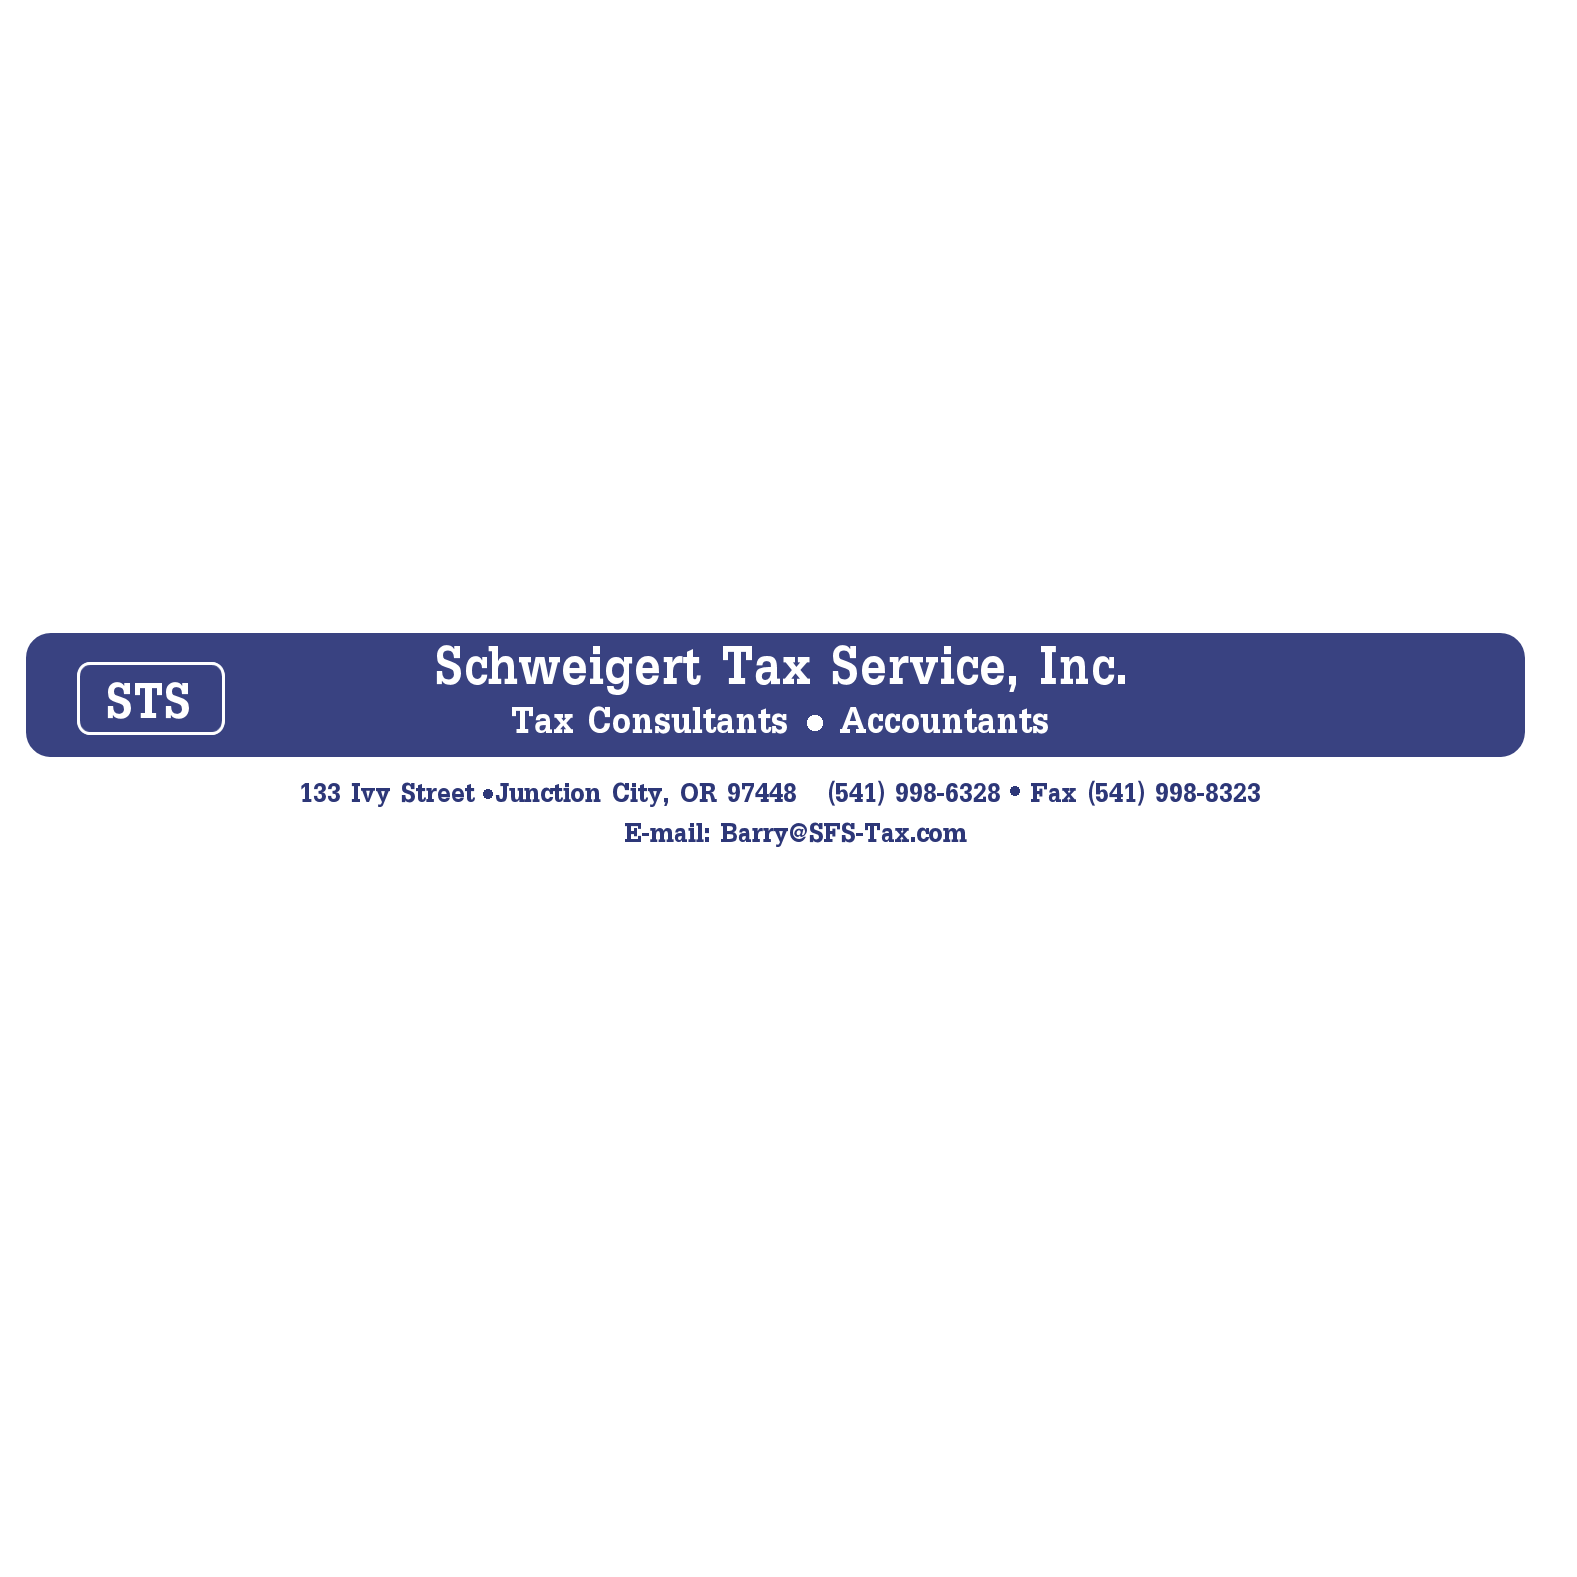 Schweigert Tax Service, Inc. - Junction City, OR - Financial Advisors